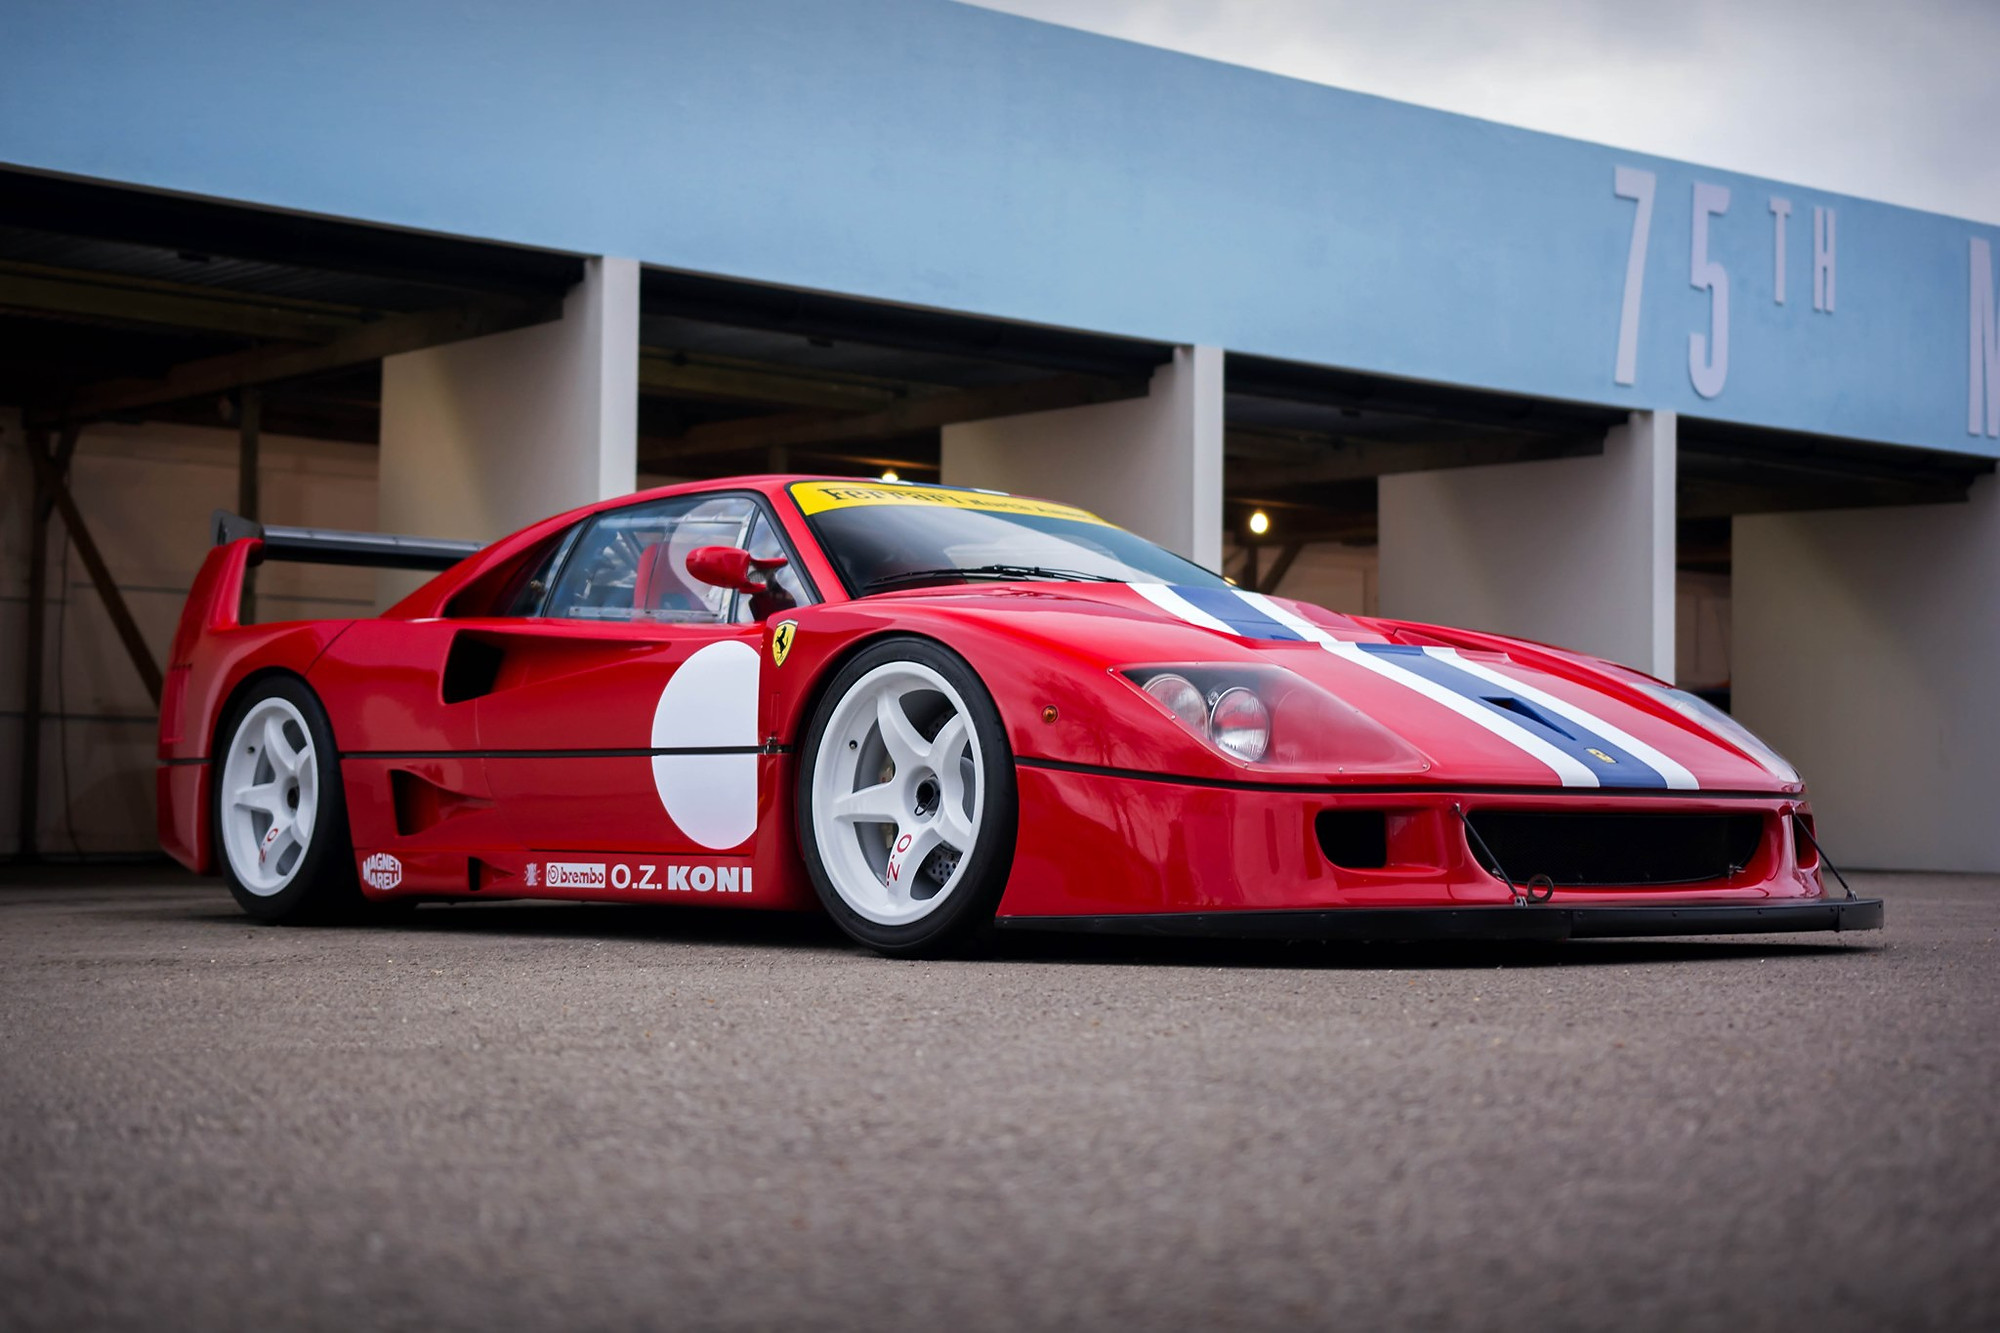 1993 Ferrari F40 Lm Chassis 97893 By Dave Rook Speedholics